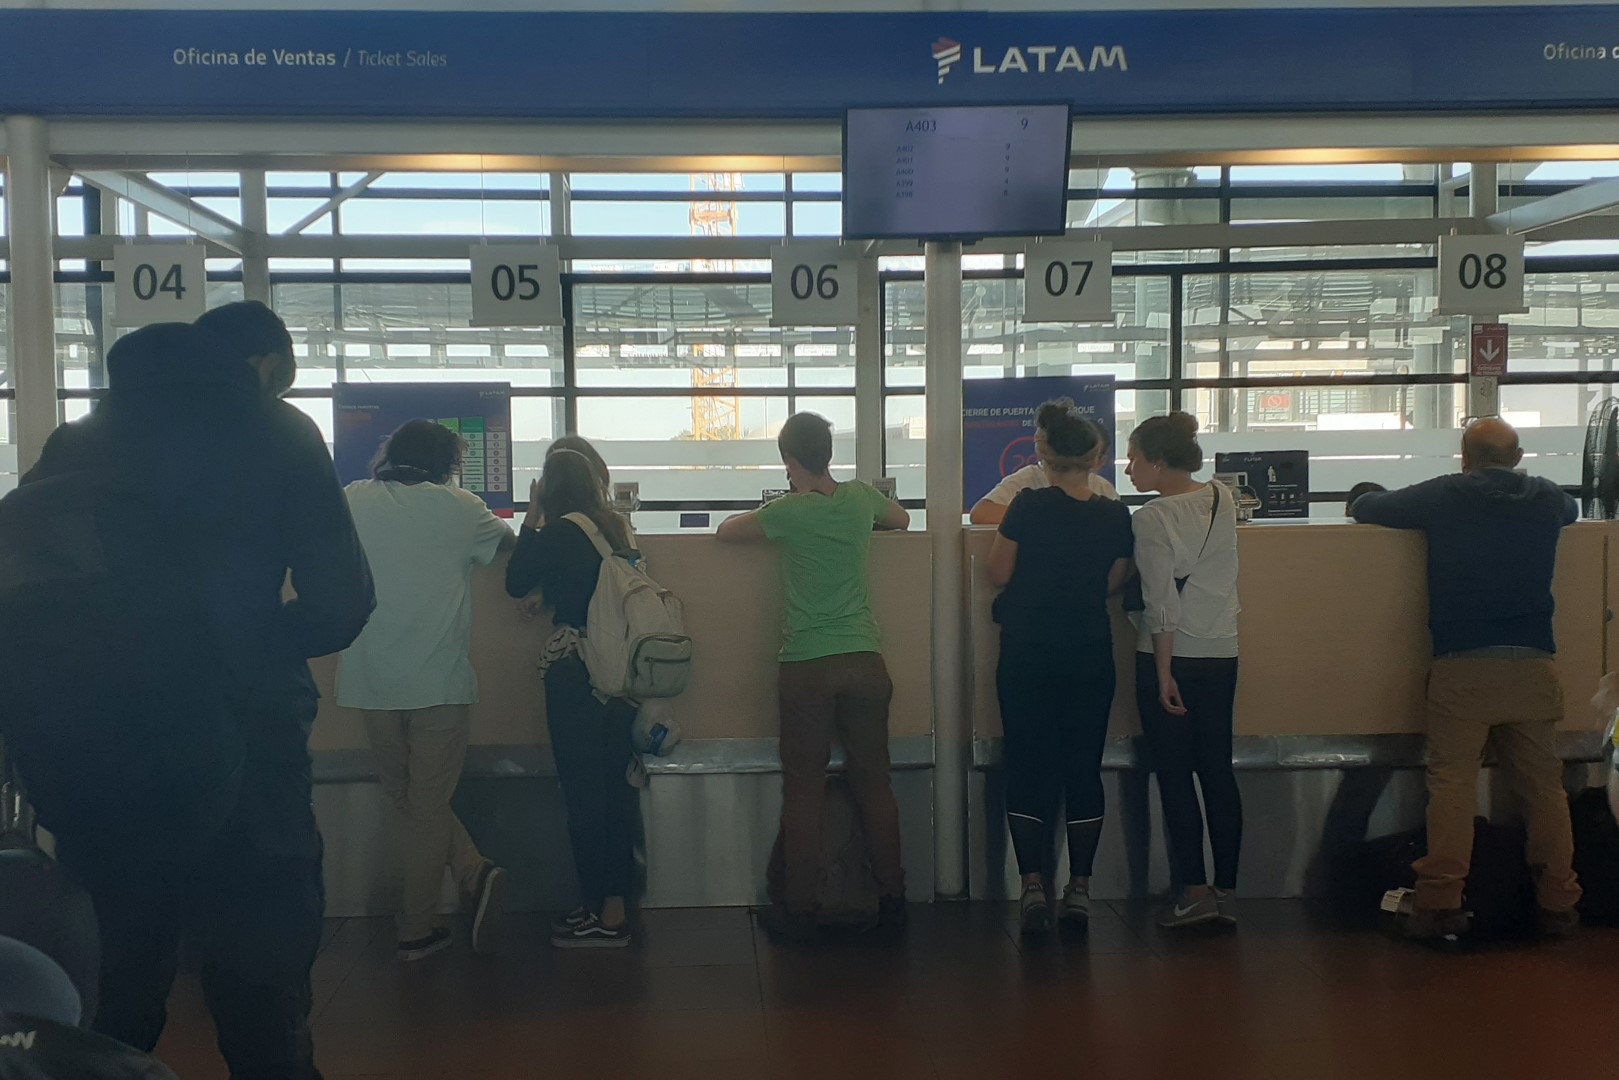 Comodoro Arturo Merino Benítez International Airport, international travellers dealing with LATAM Airlines (the company cancelled 90% of its flights)